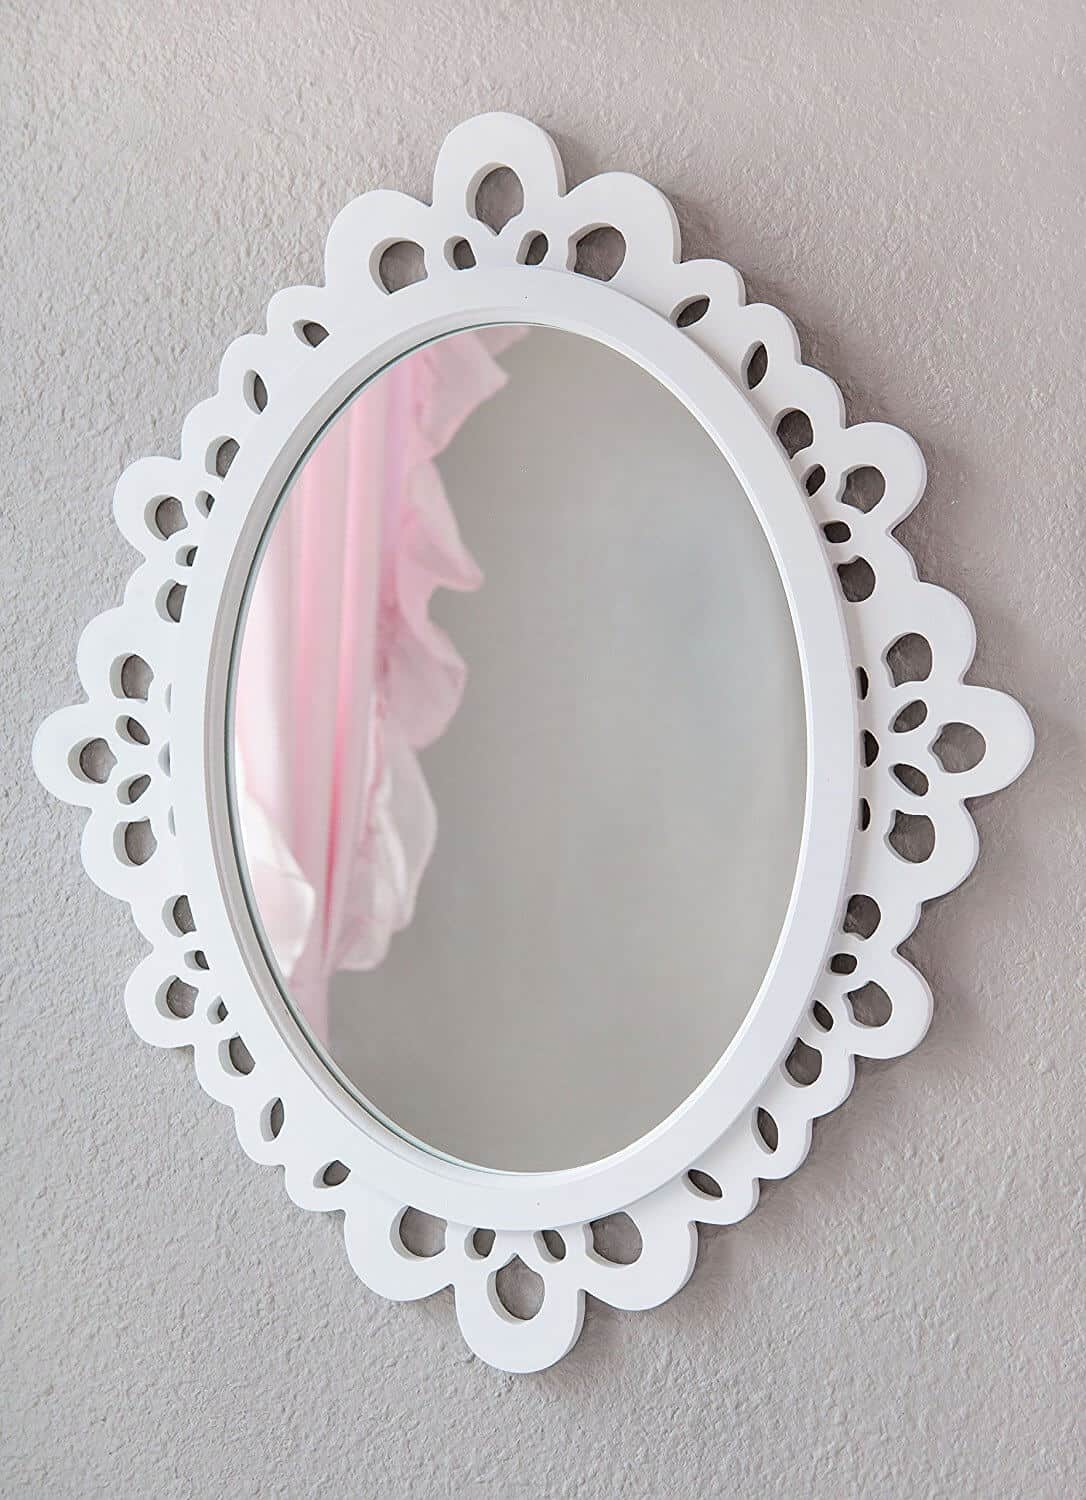 11 Great Small Mirrors for Your Home Round Oval and